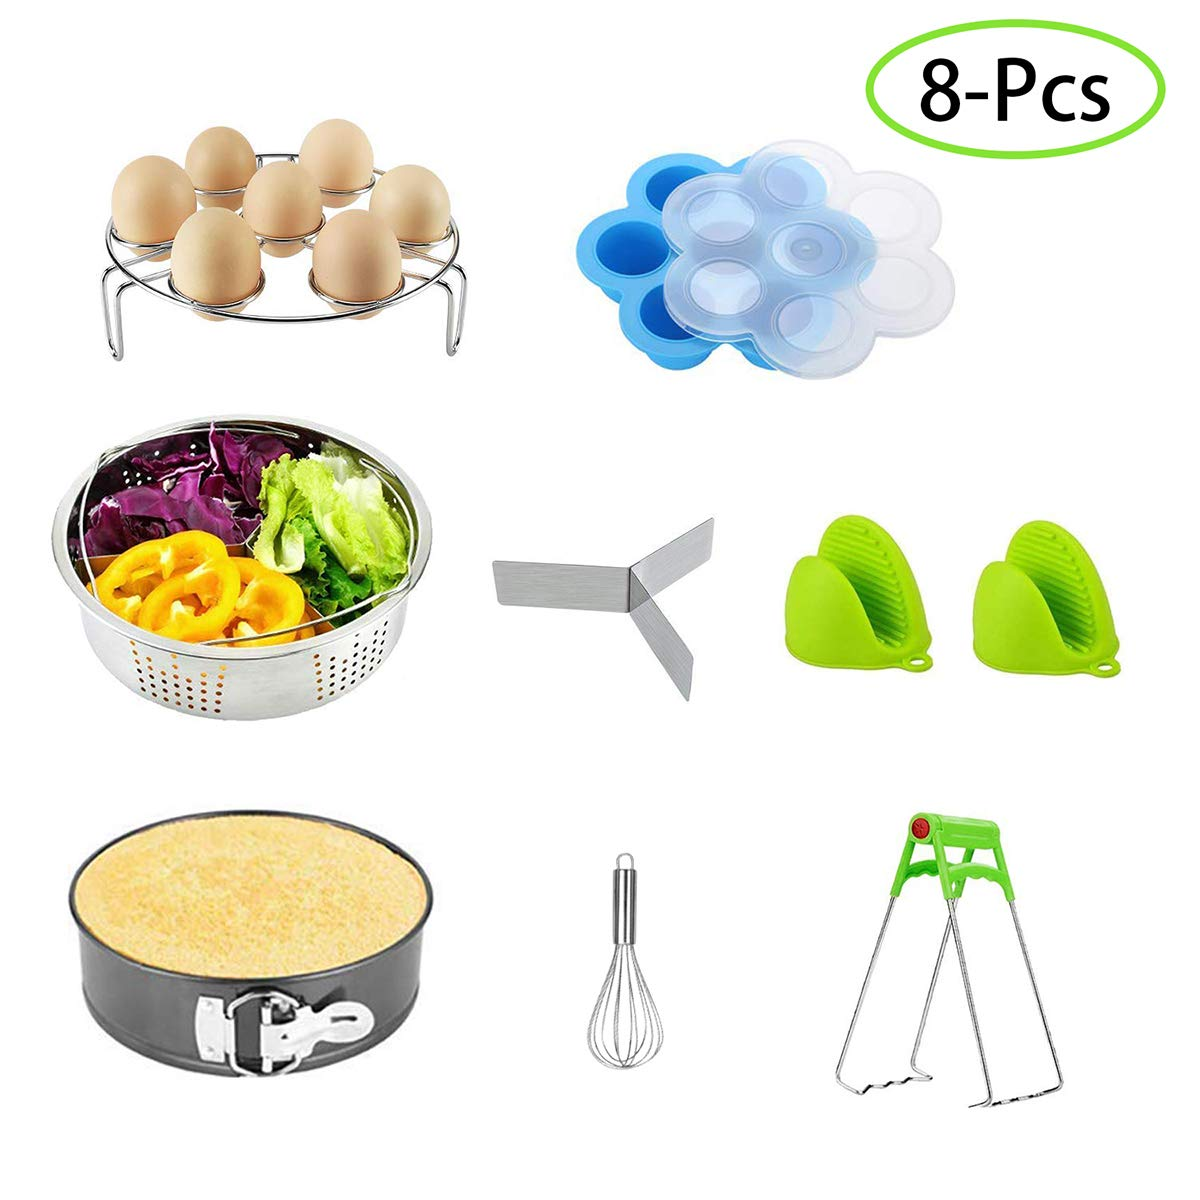 Baking Silicone Egg Beaters Hand Egg Mixer Home 1 Pcs 9 Inches Cook Blender LI